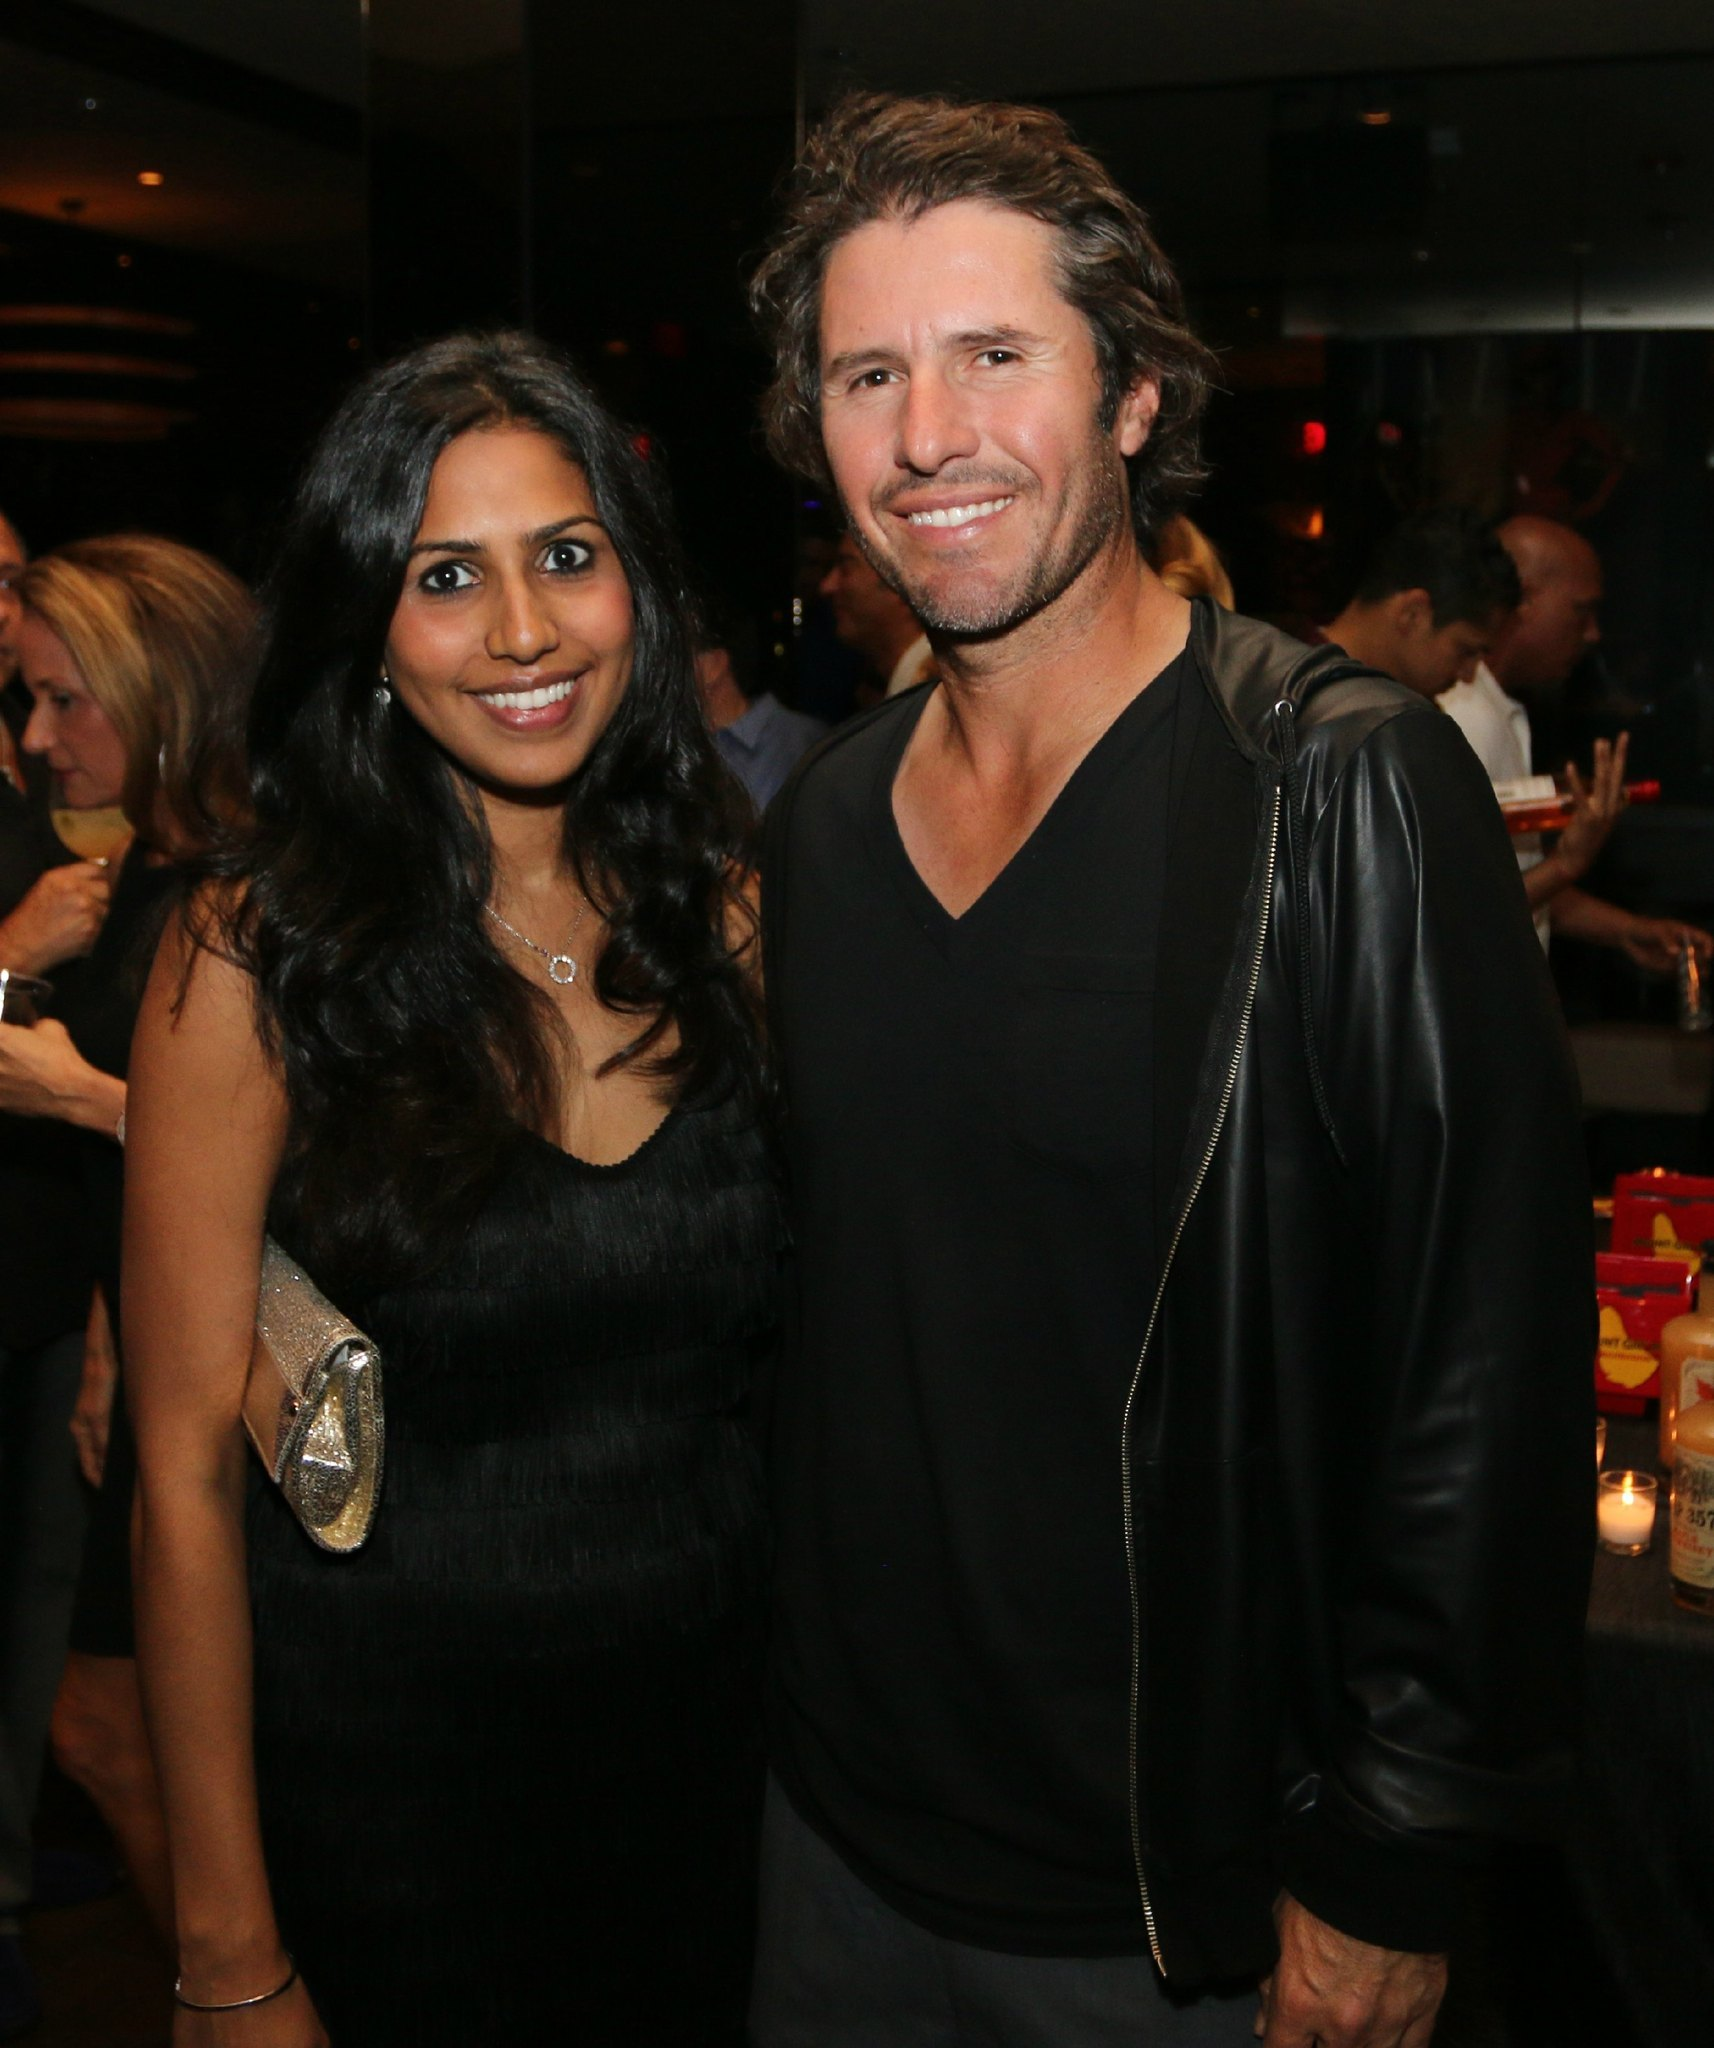 Jazziz Nightlife Grand Opening Party - Zakiya Fagien and Vince Spadea